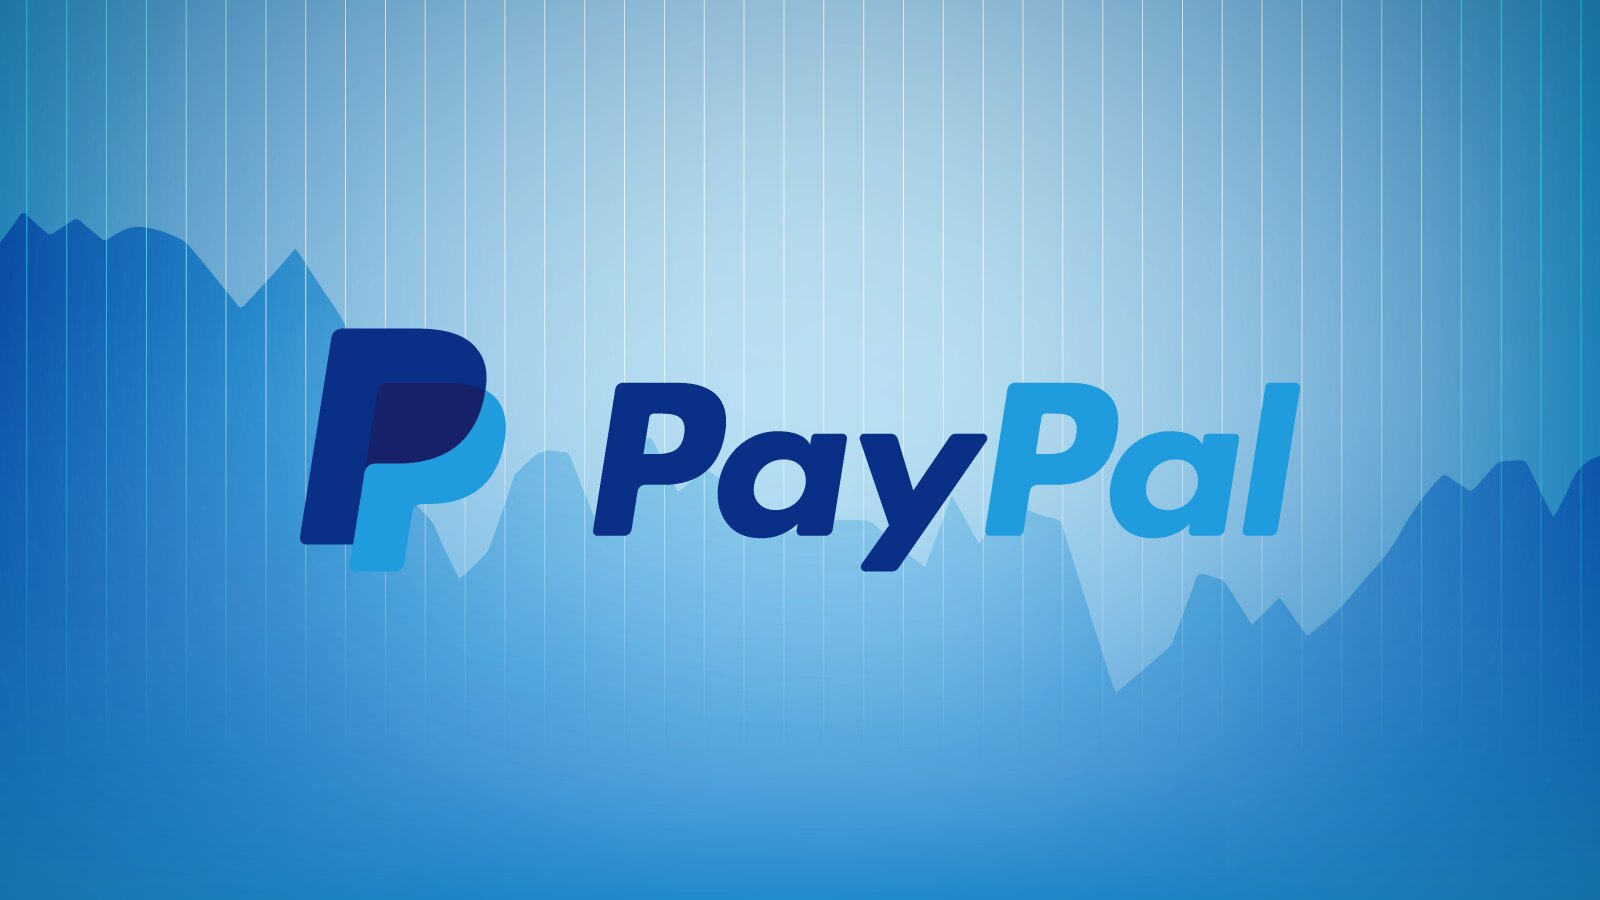 How To Use PayPal to Transfer Money ツ Online ツ Instantly